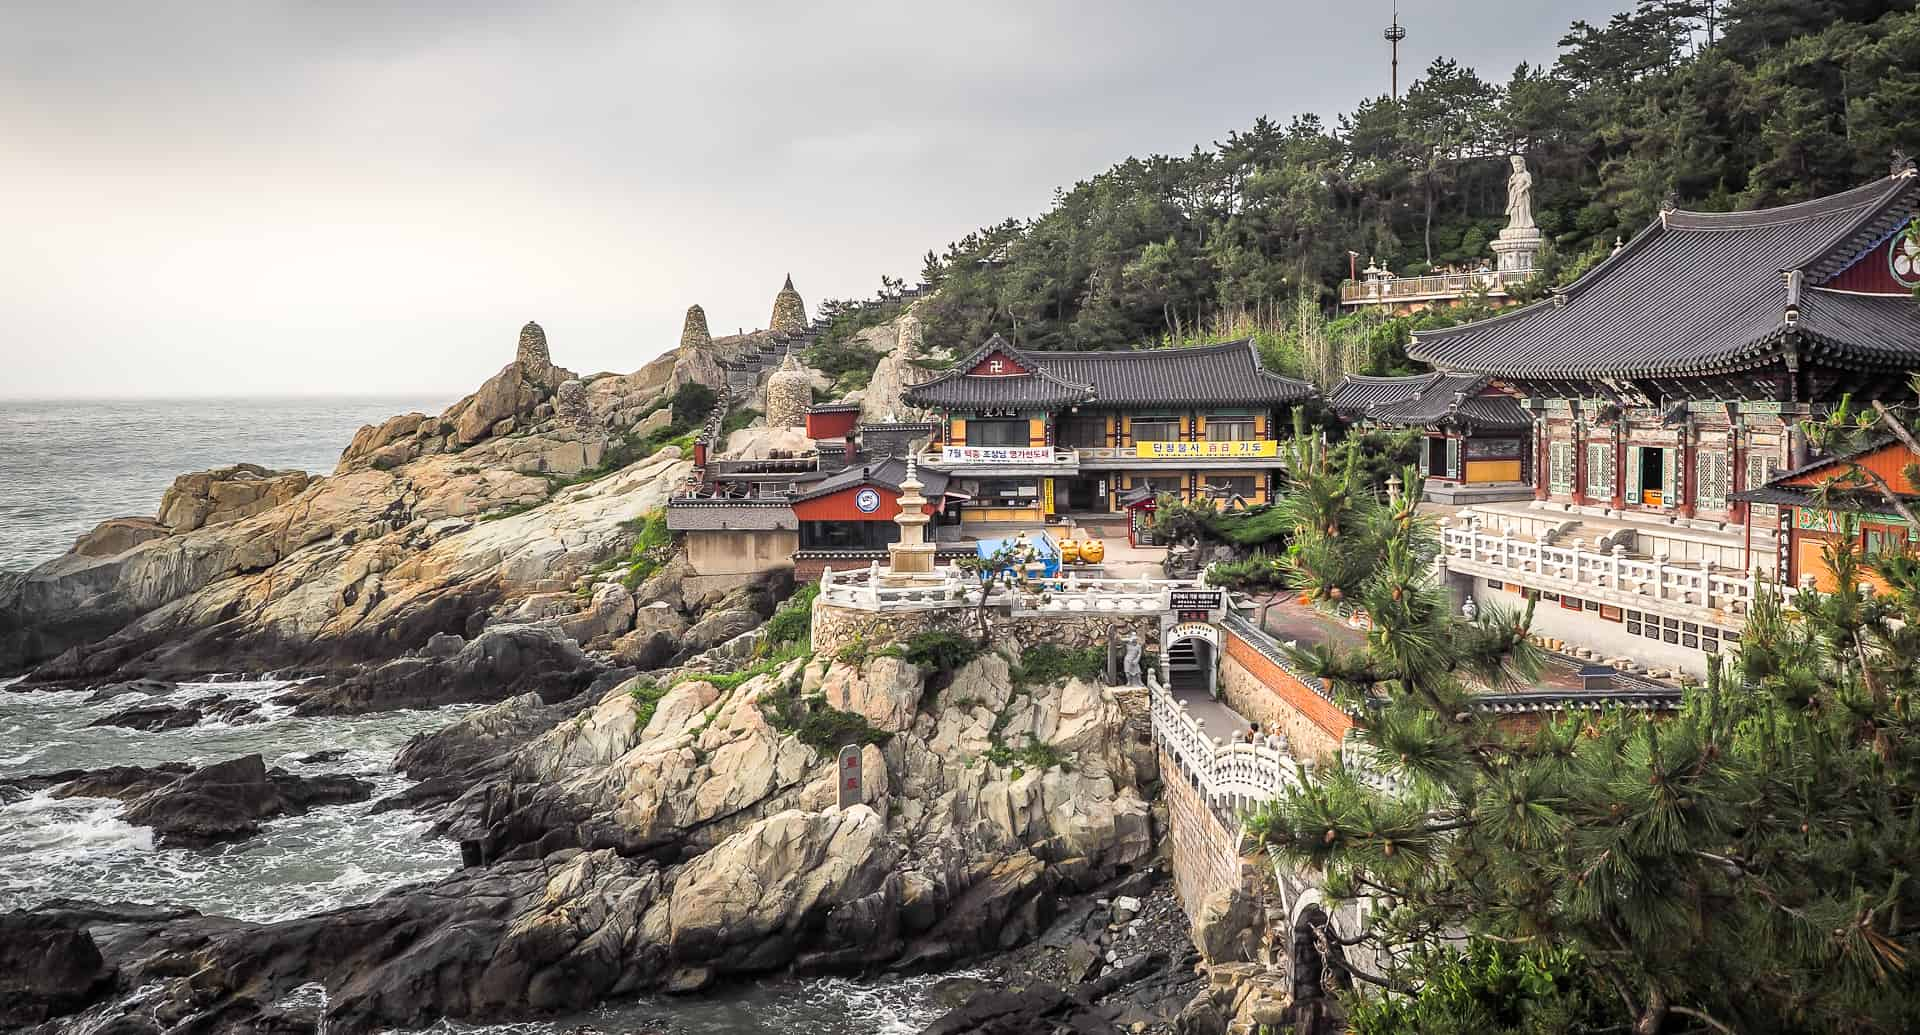 How to visit Haedong Yonggungsa Temple in Busan, South Korea